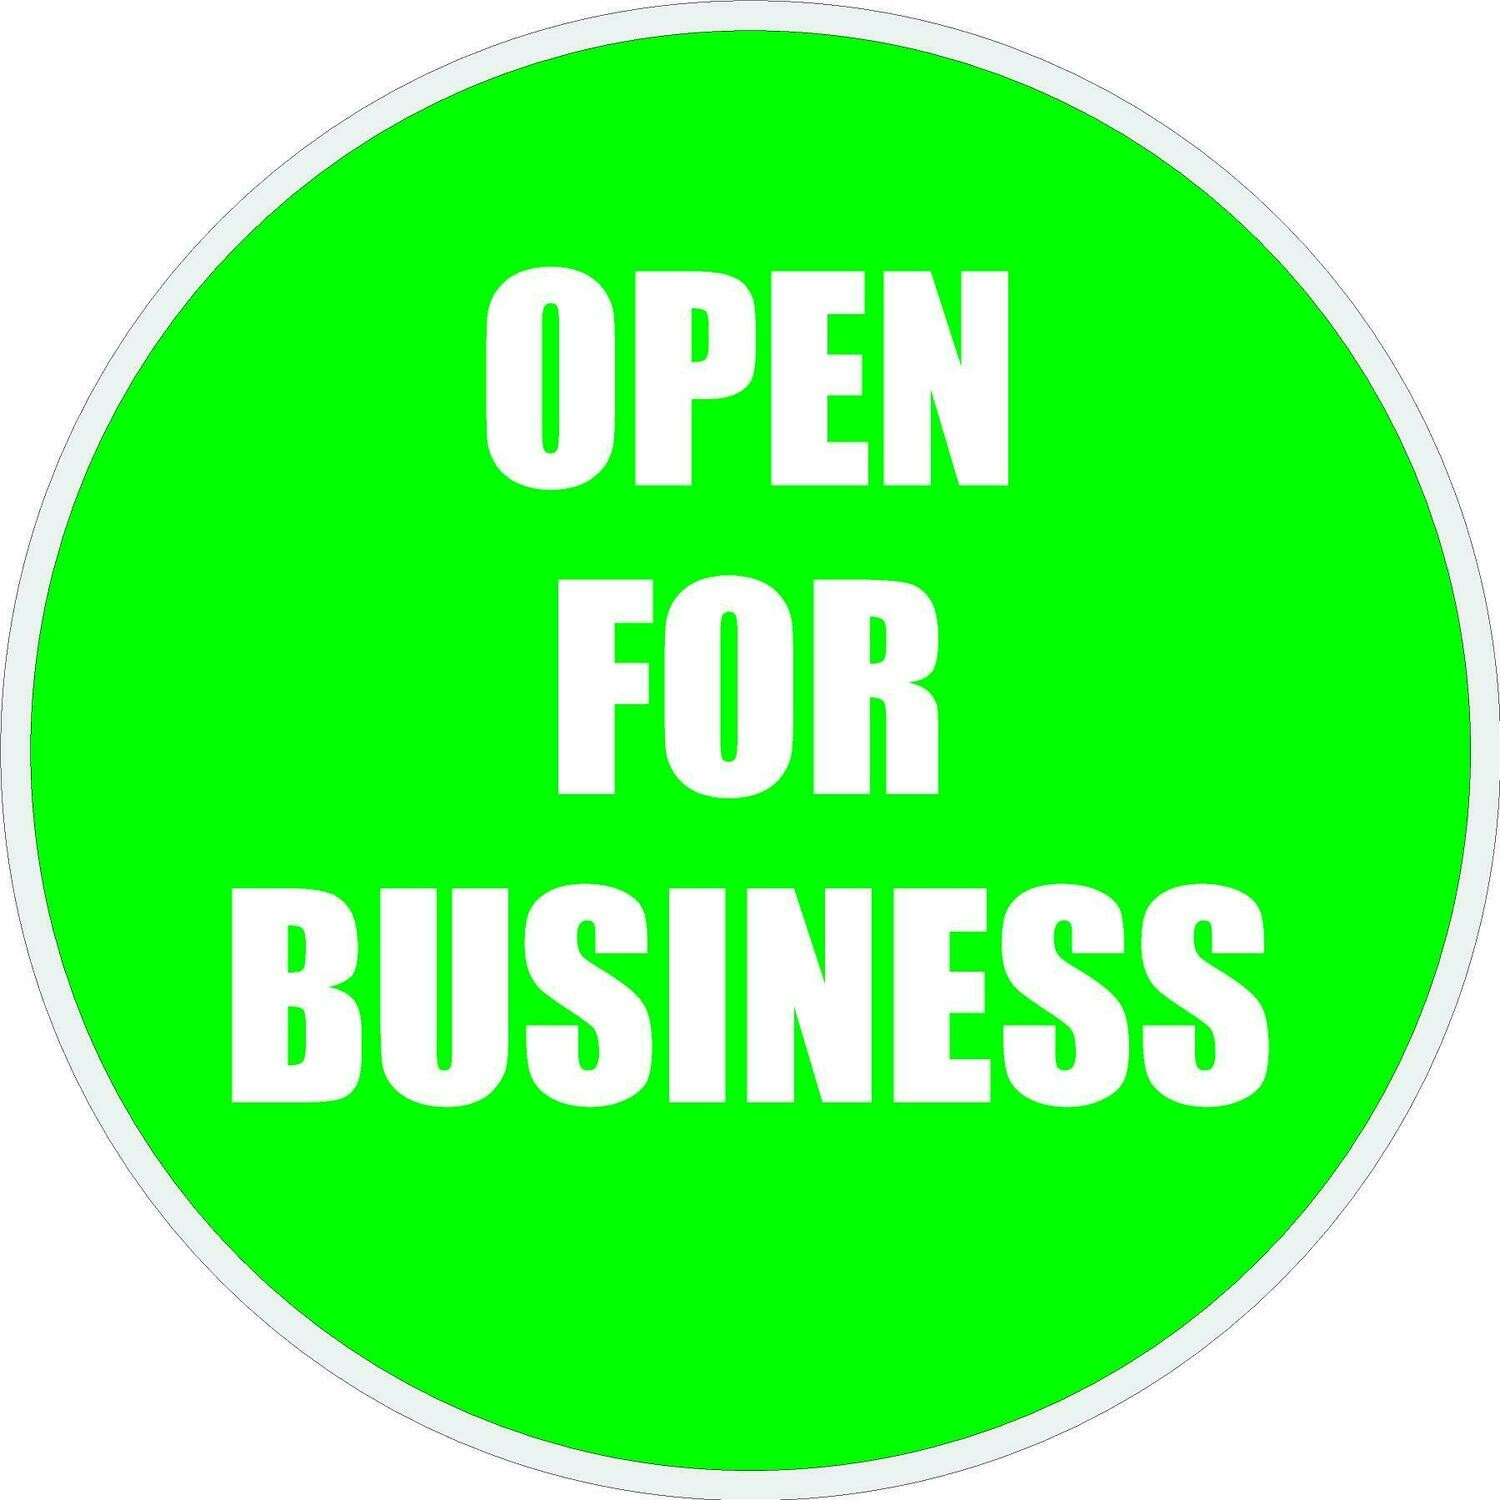 Window Decals - OPEN FOR BUSINESS Graphic